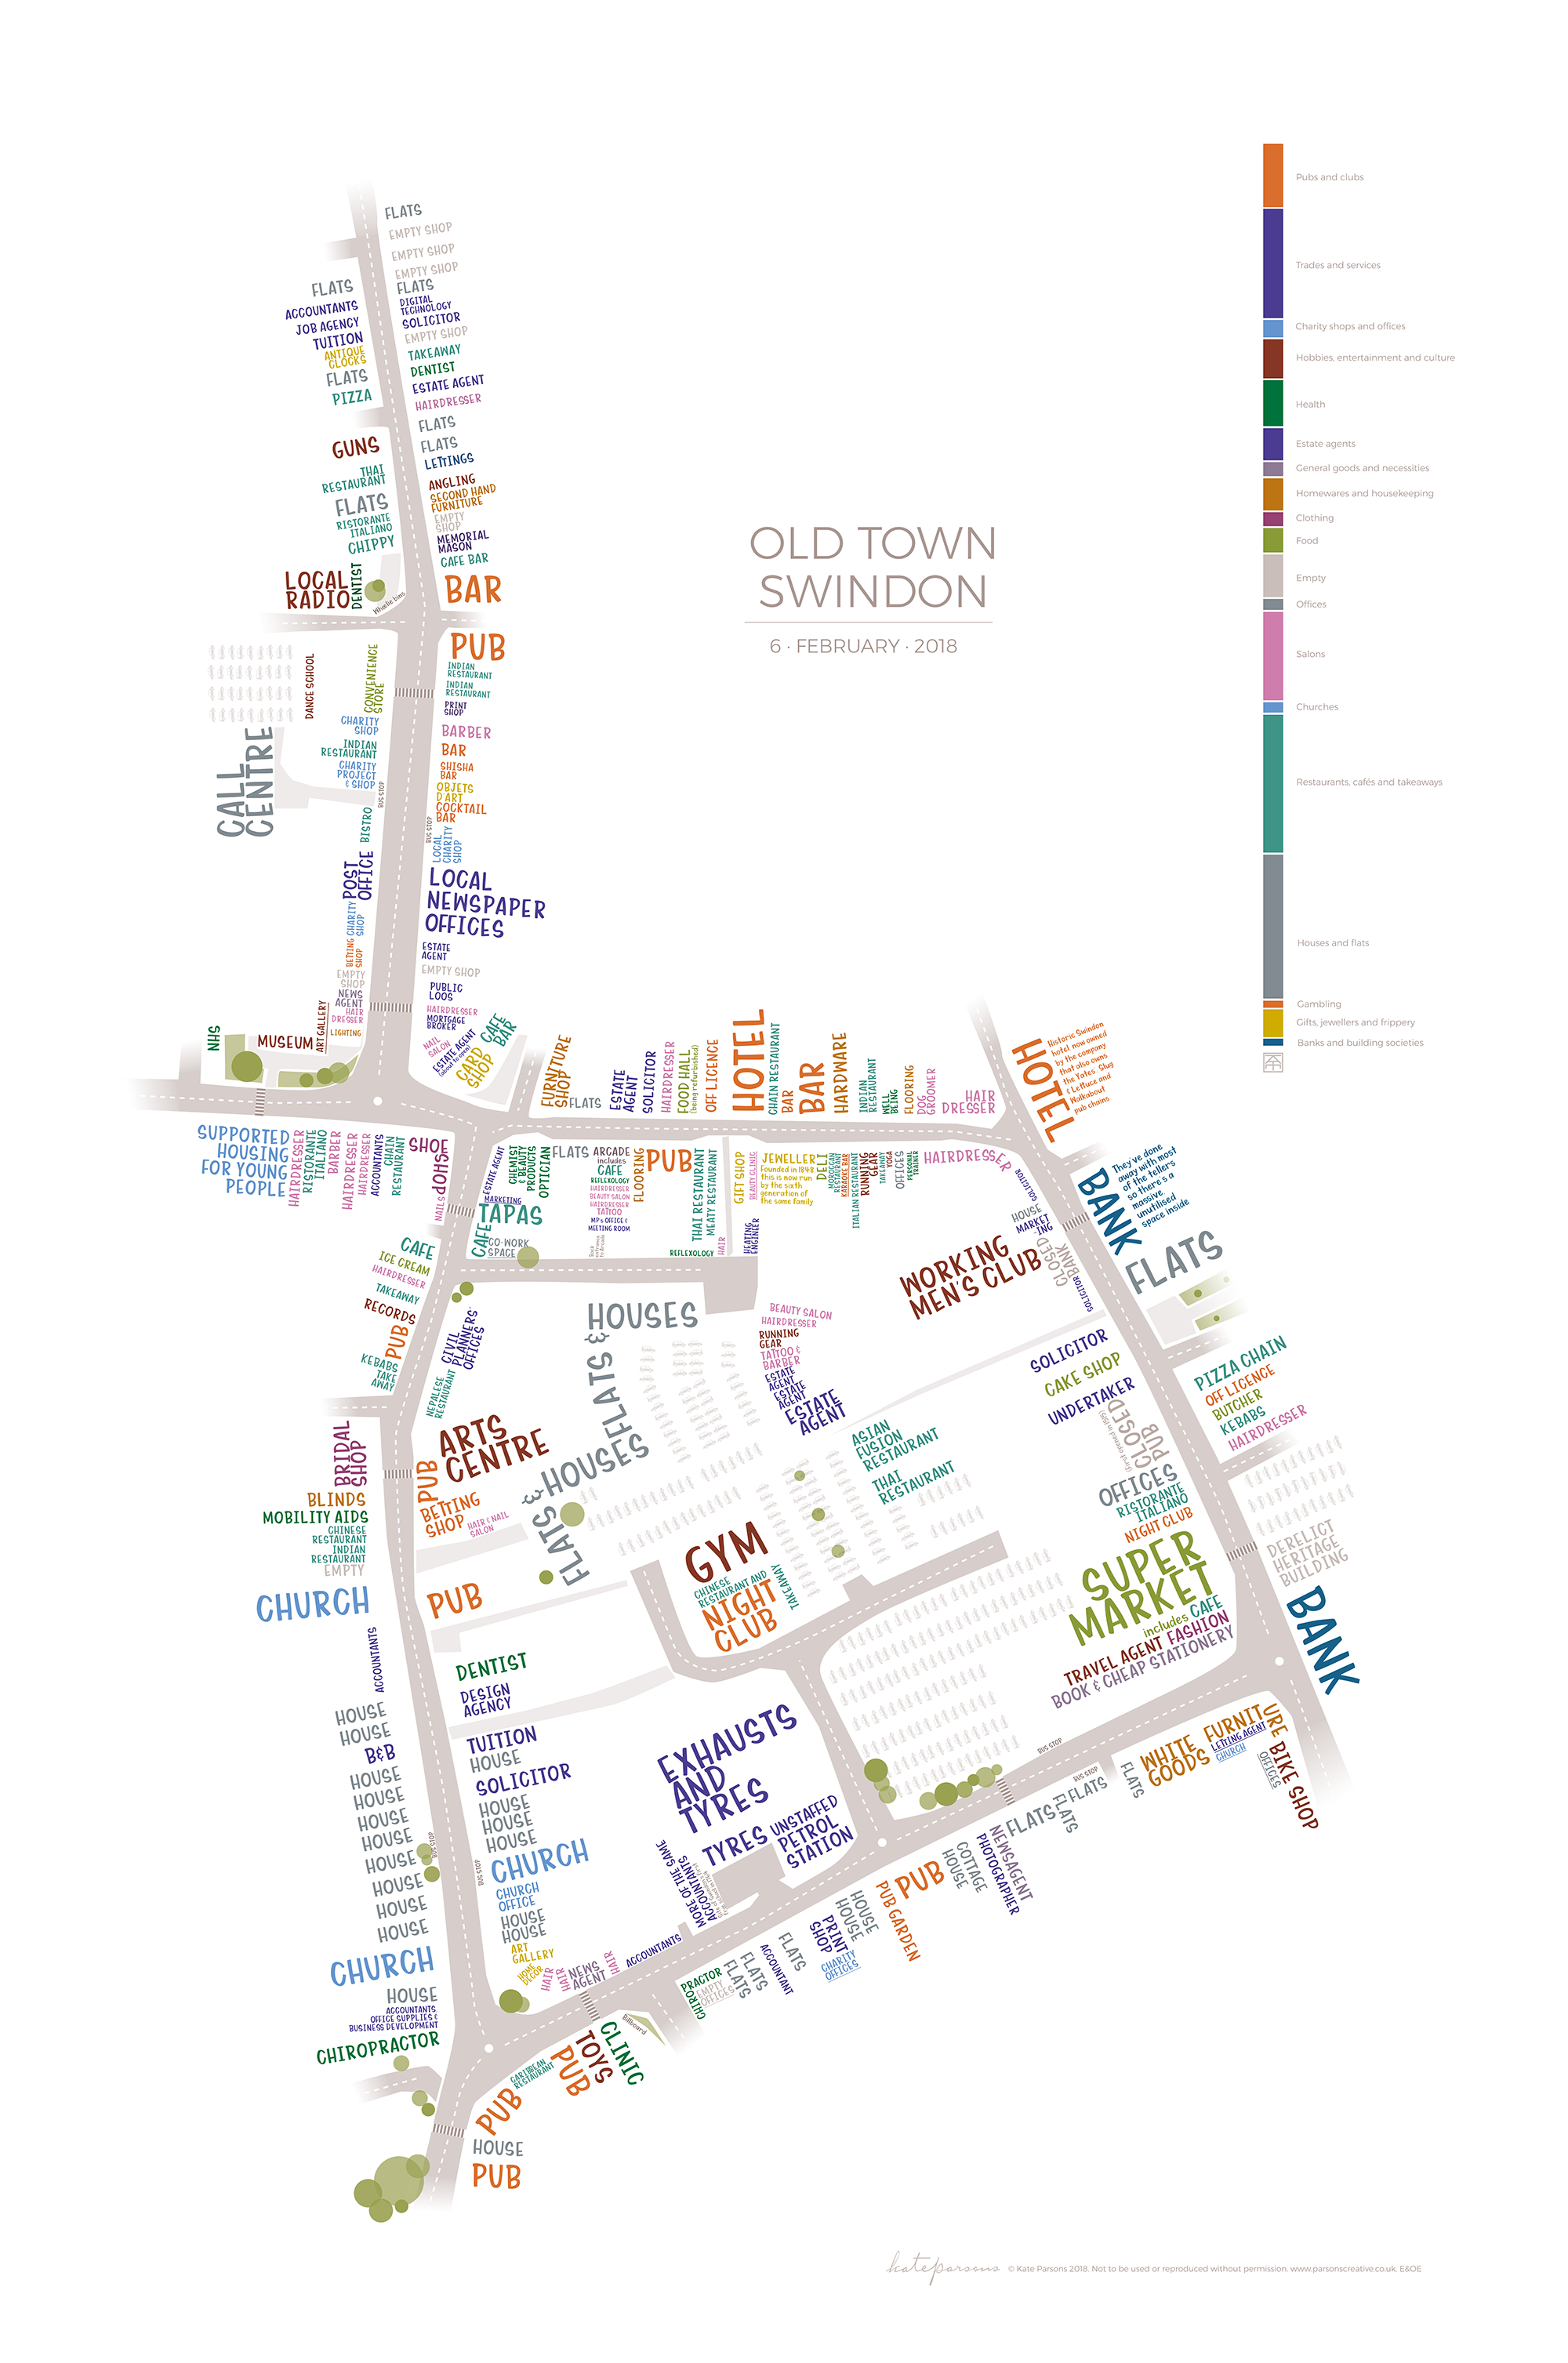 Old Town Swindon, typographic map, Wiltshire